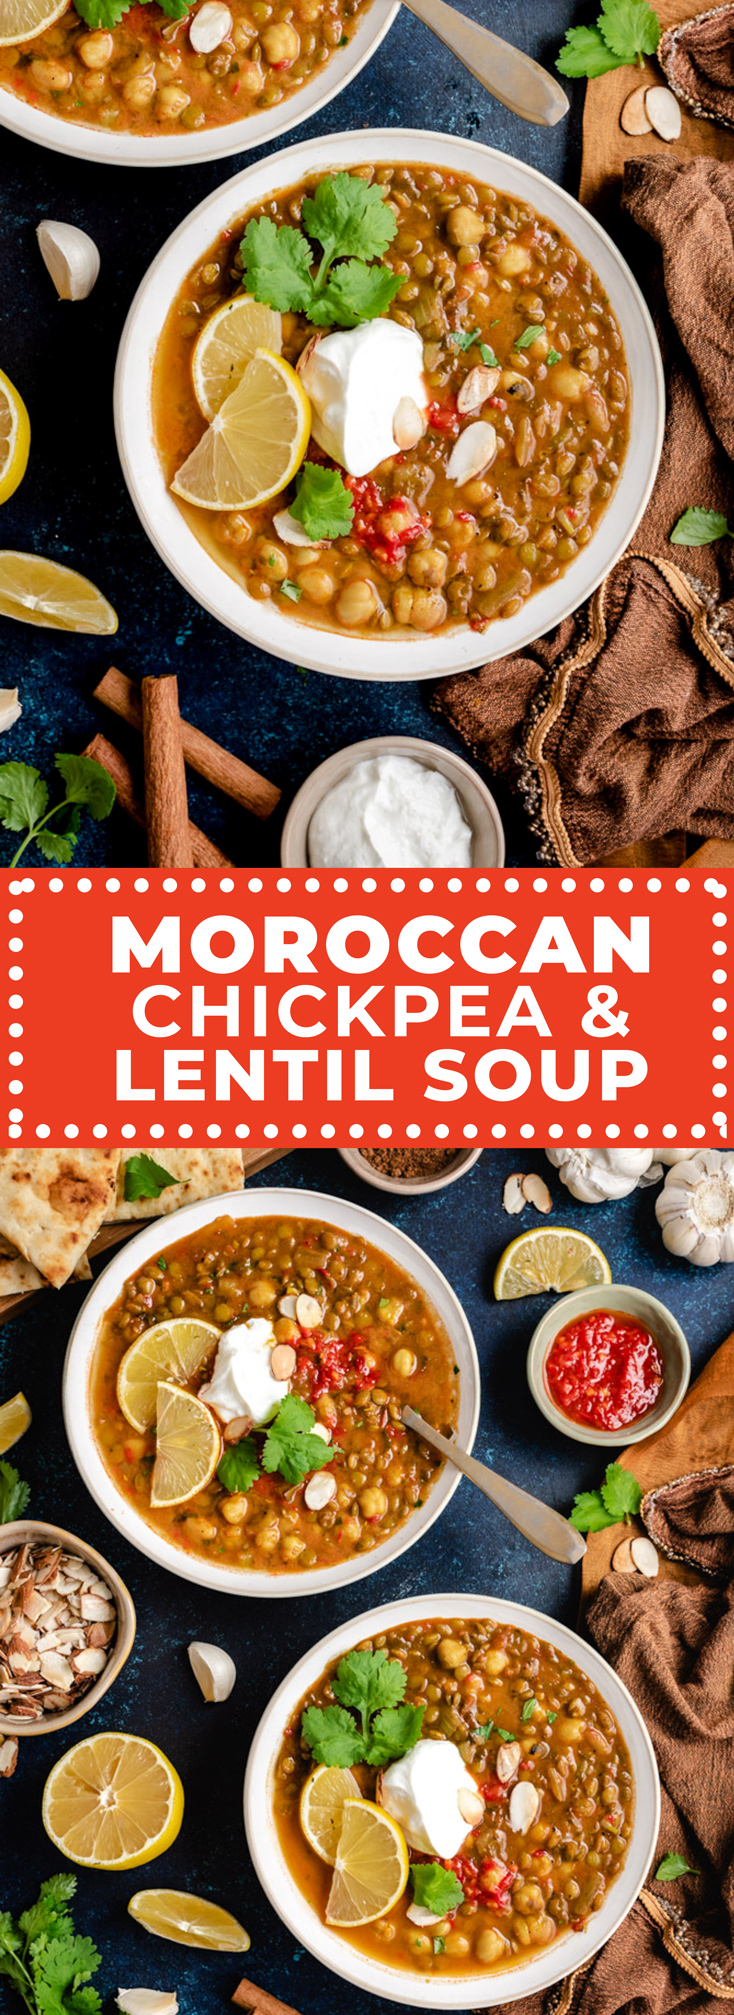 a is a comforting Moroccan soup that features chickpeas, lentils, and plenty of deep flavors from harissa paste and toasted spices. Typically, Harira soup includes ground meat, but this easy version is vegetarian (and vegan) friendly! Even better-- it mostly makes use of pantry staples, so it's easy to stock up ahead of time and make this delicious soup whenever the craving hits. | hostthetoast.com